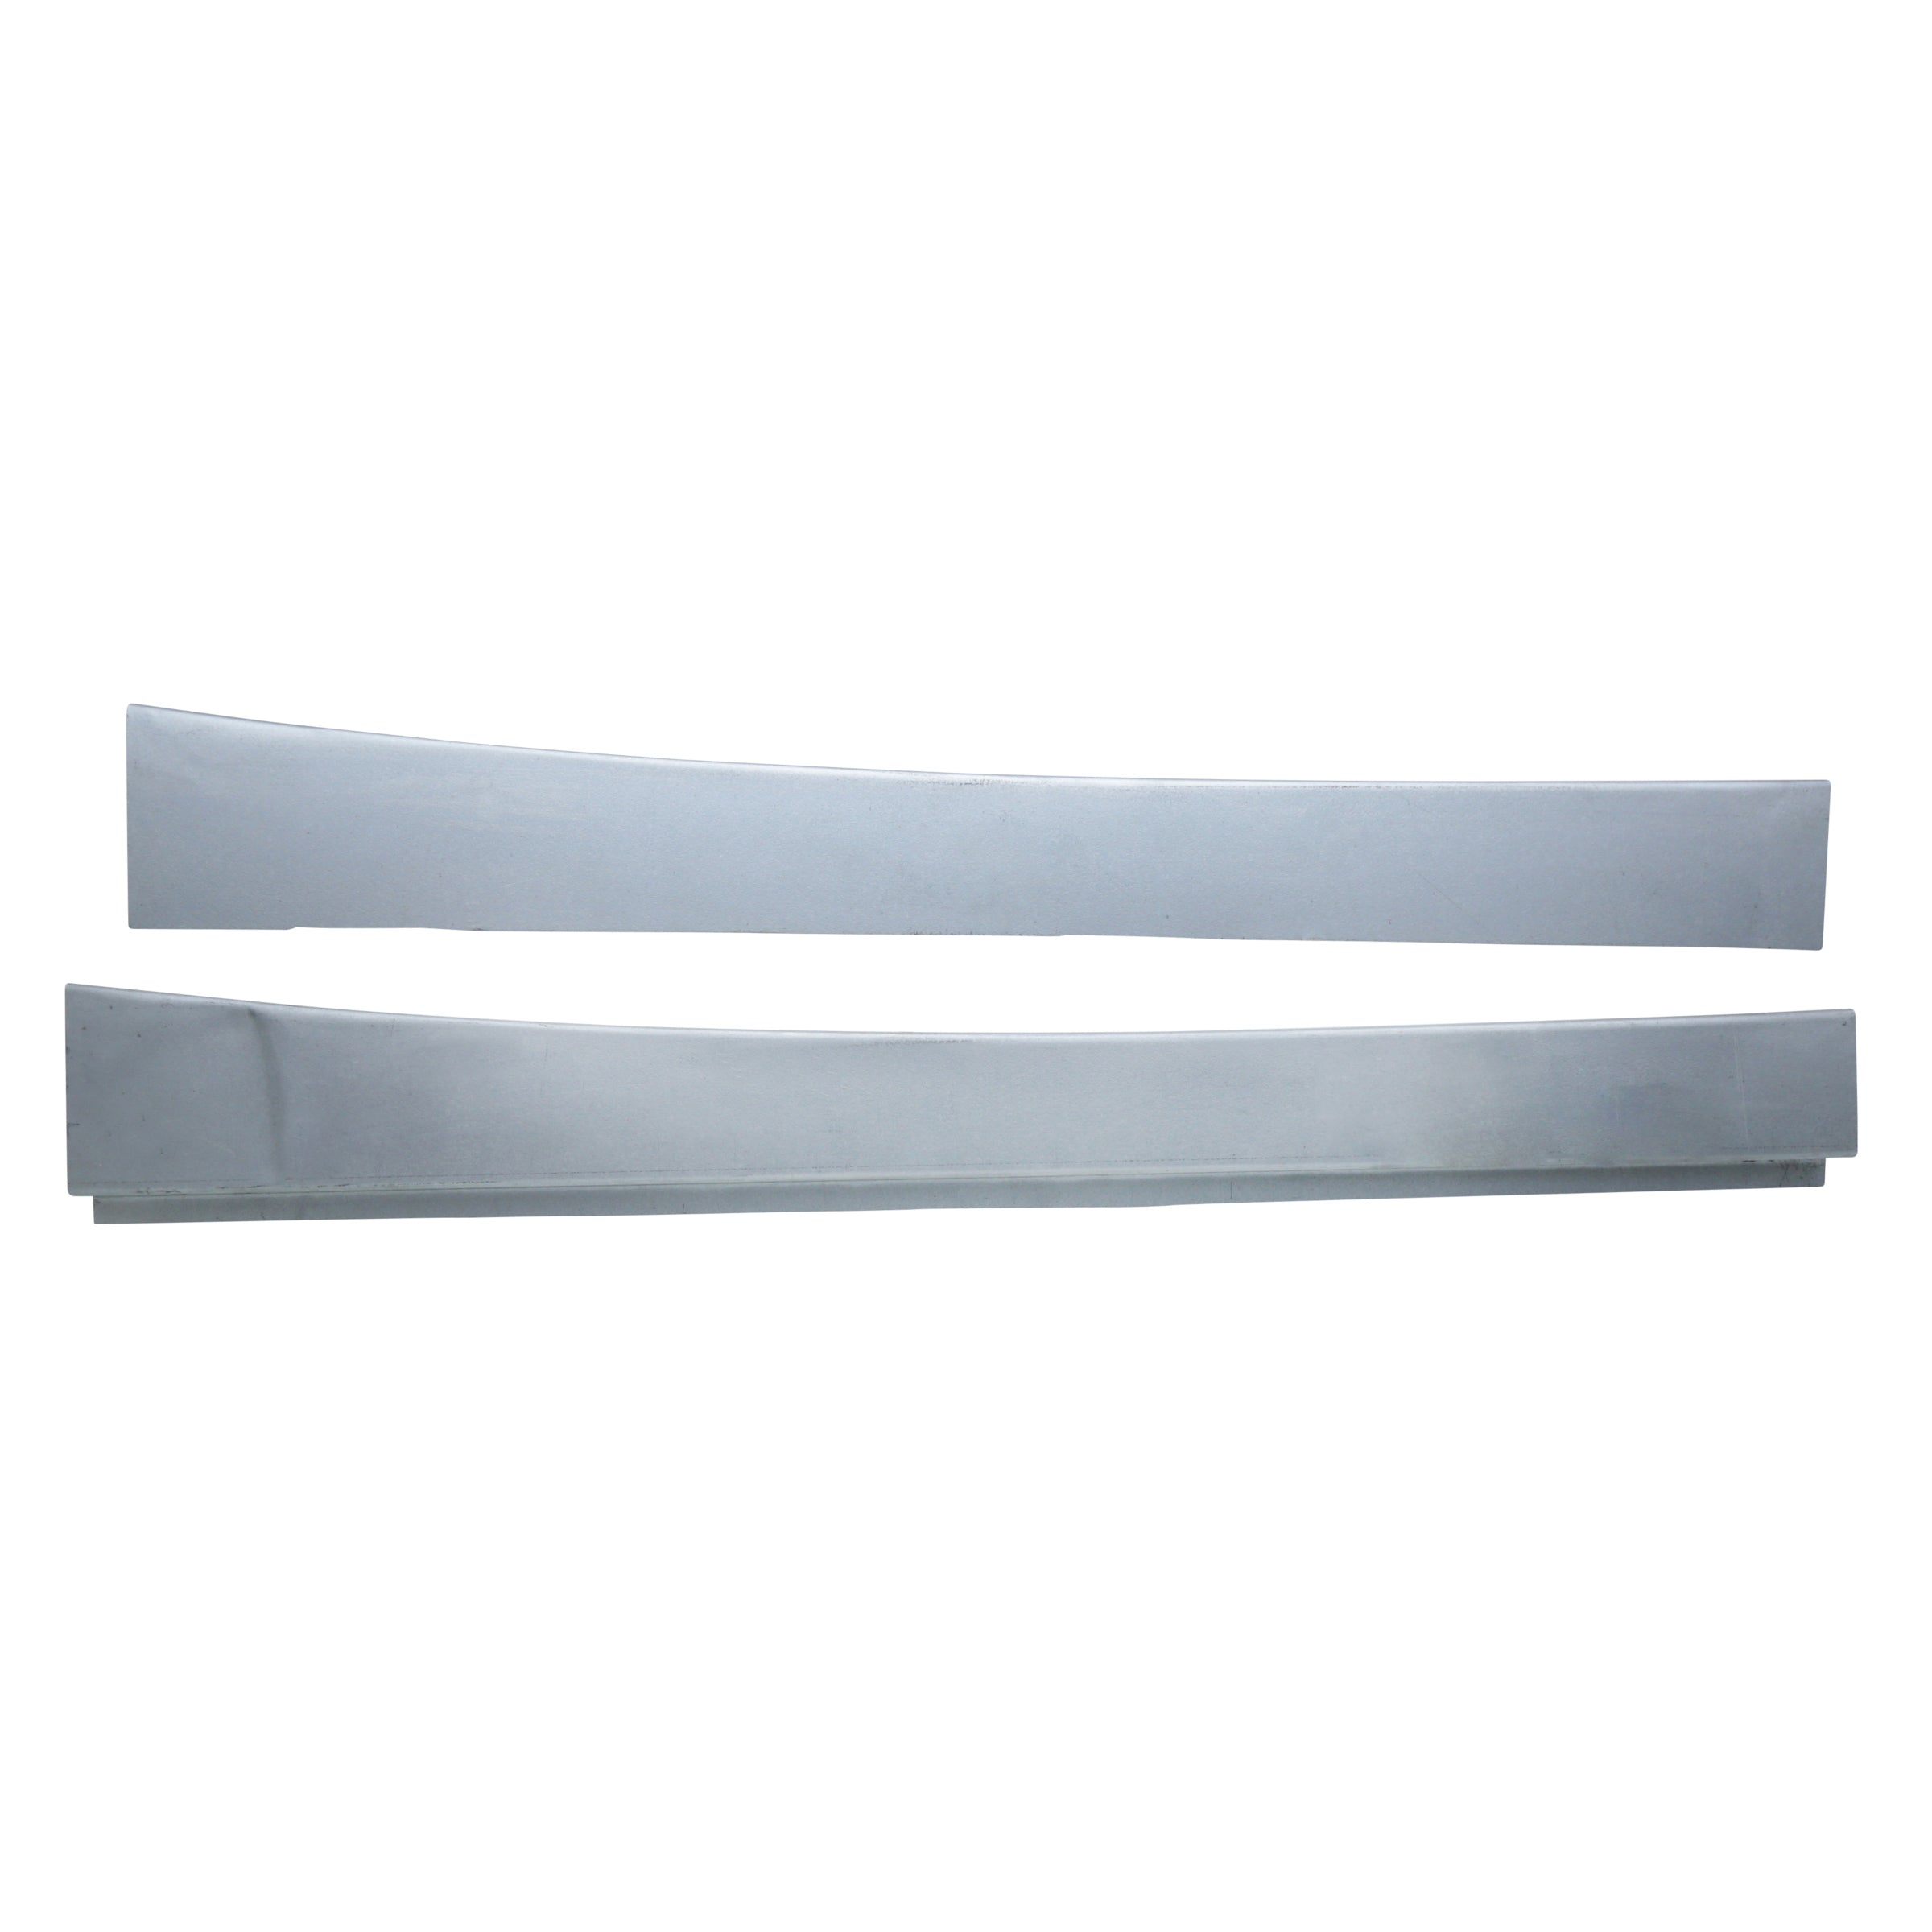 Rocker Panel Box (Center, Left) • 1941-48 Ford & Mercury Fordor, Business Coupe, & Sedan Delivery